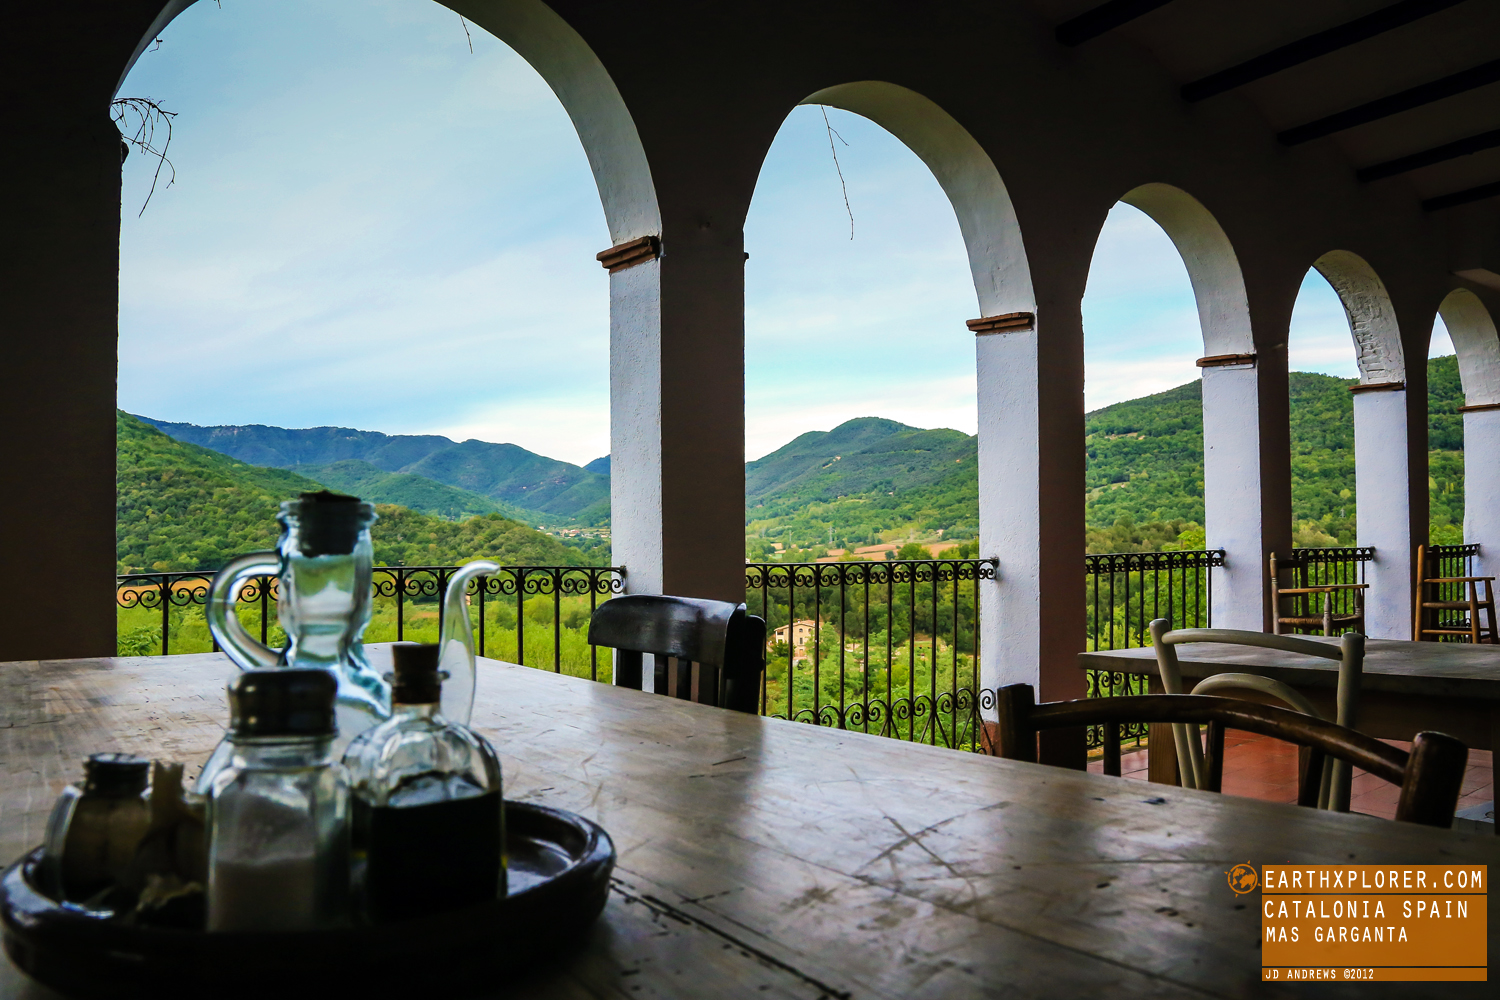 A restored farmhouse located in the heart of La Garrotxa and on the edge of La Garrotxa Volcanic Zone Natural Park.